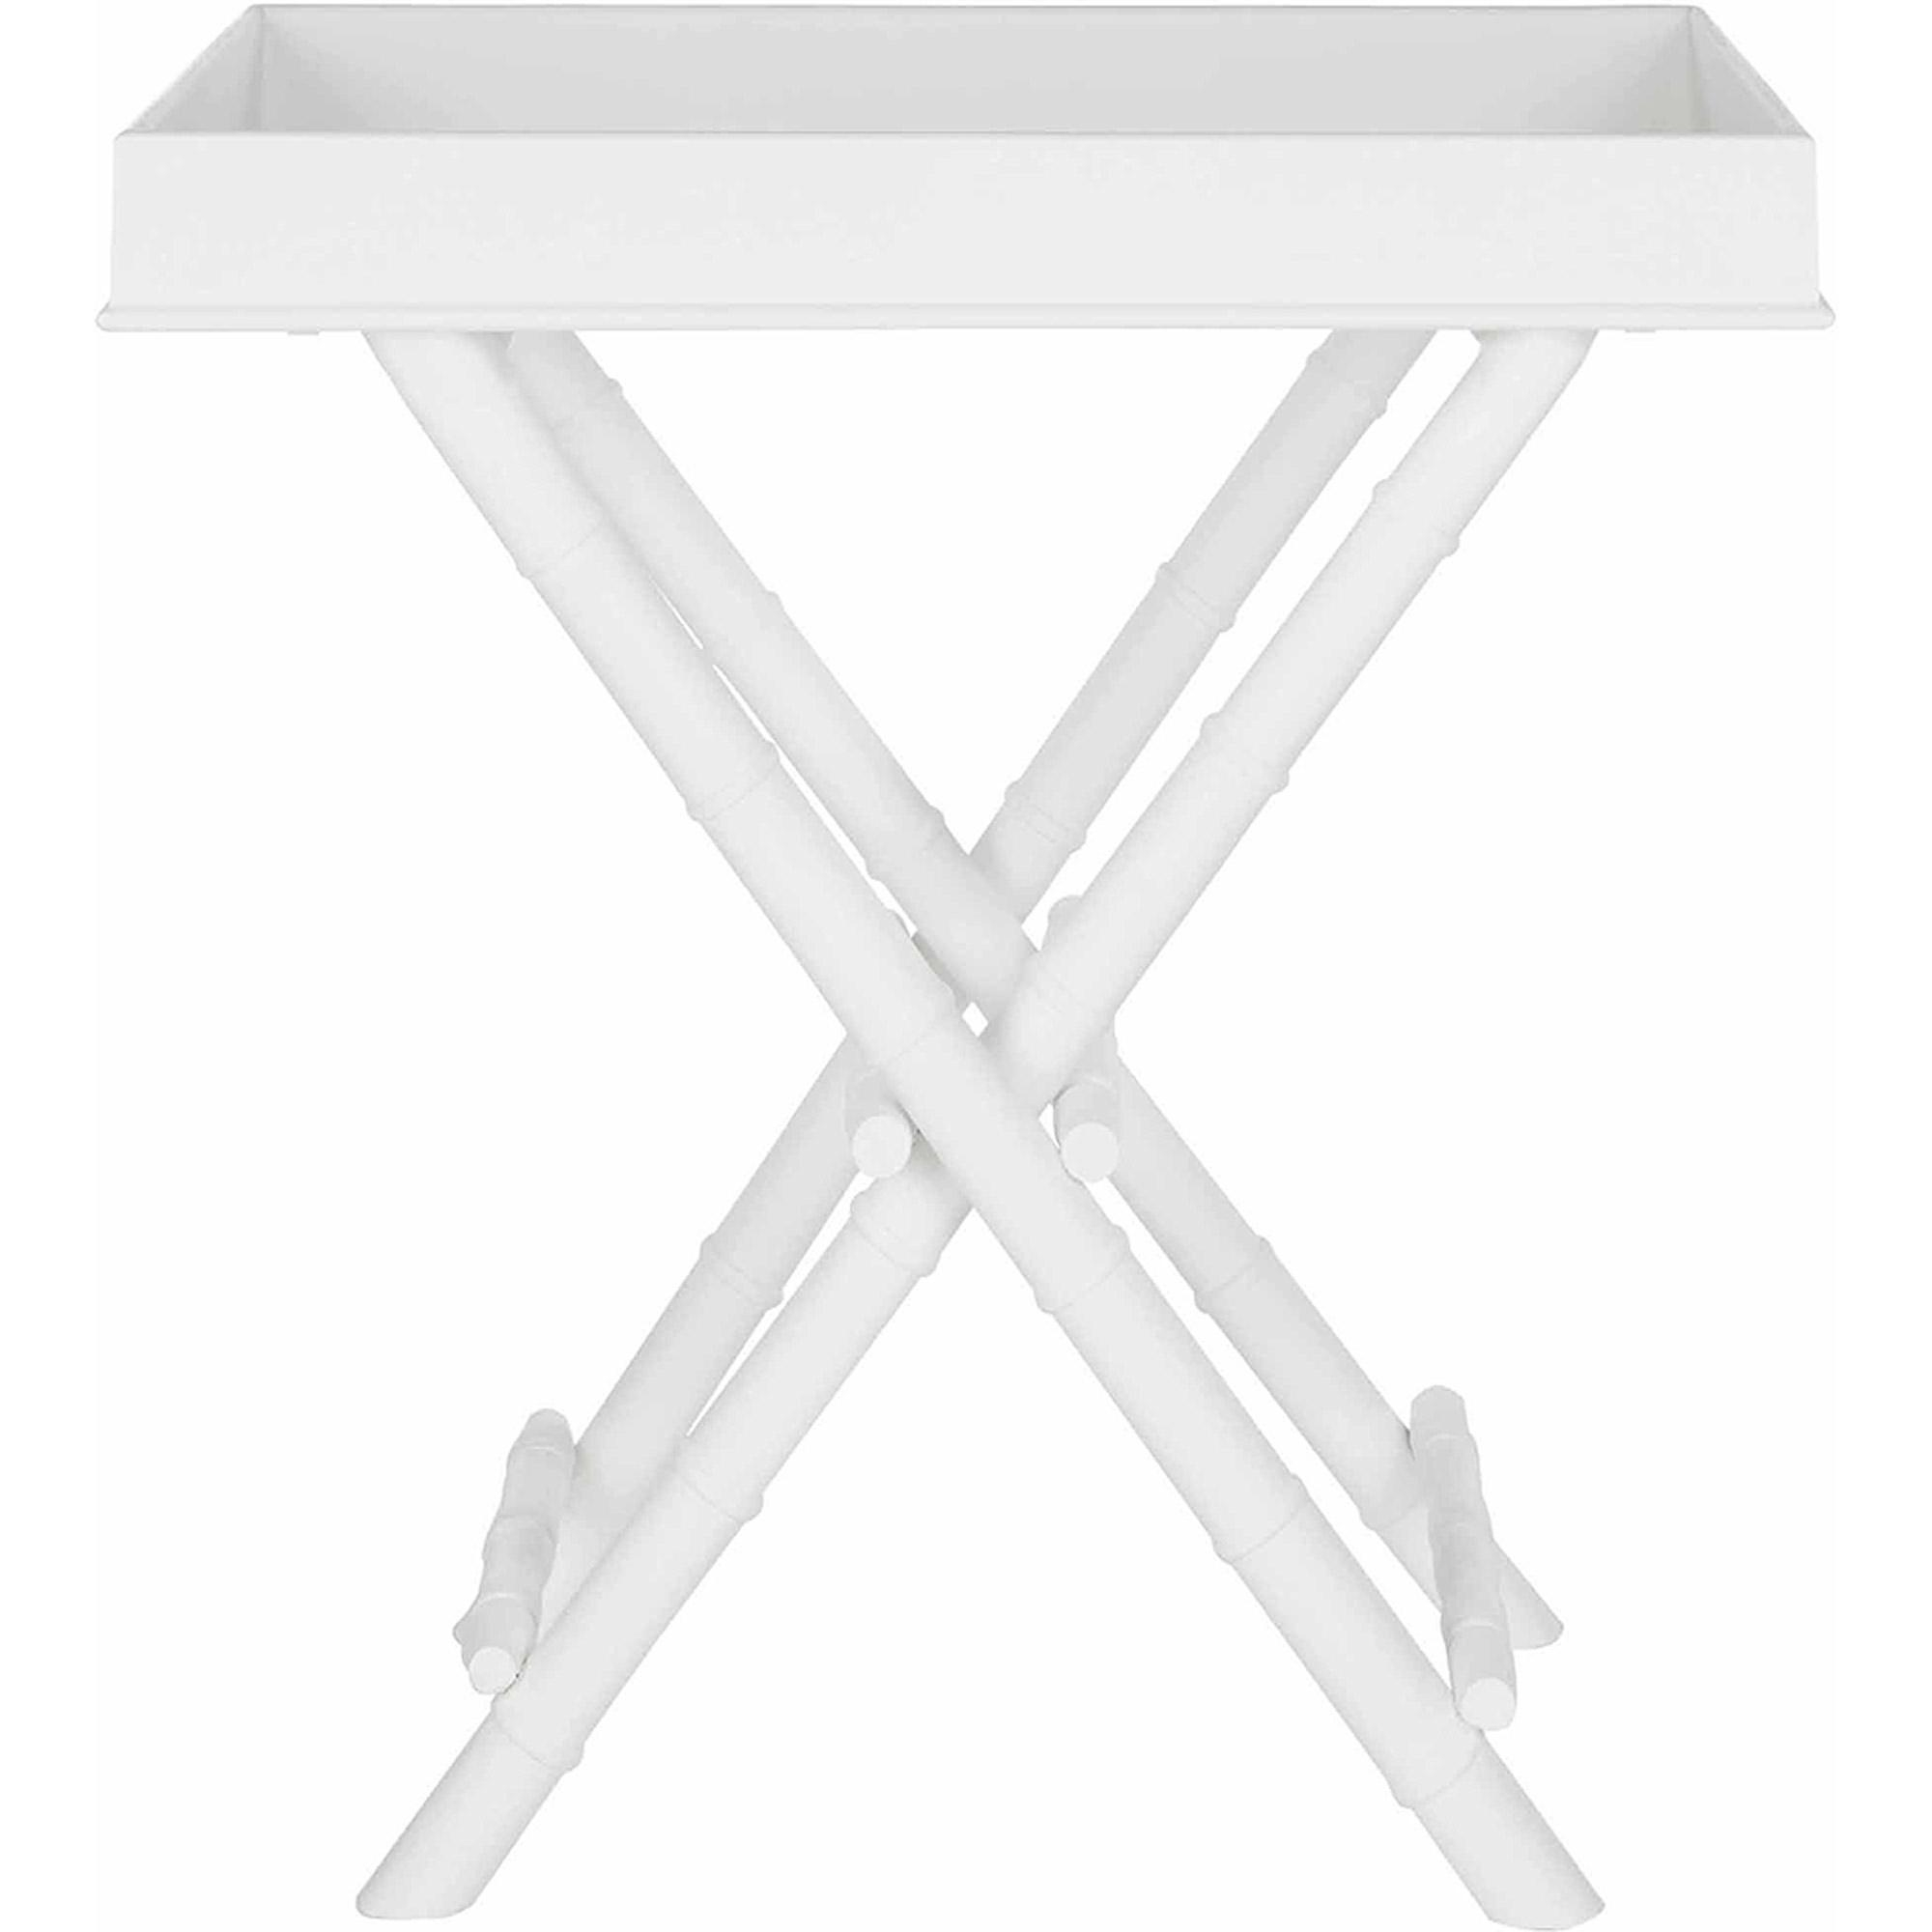 Tv Tray Tables – Walmart With Regard To Sofa Snack Tray Table (Image 19 of 21)